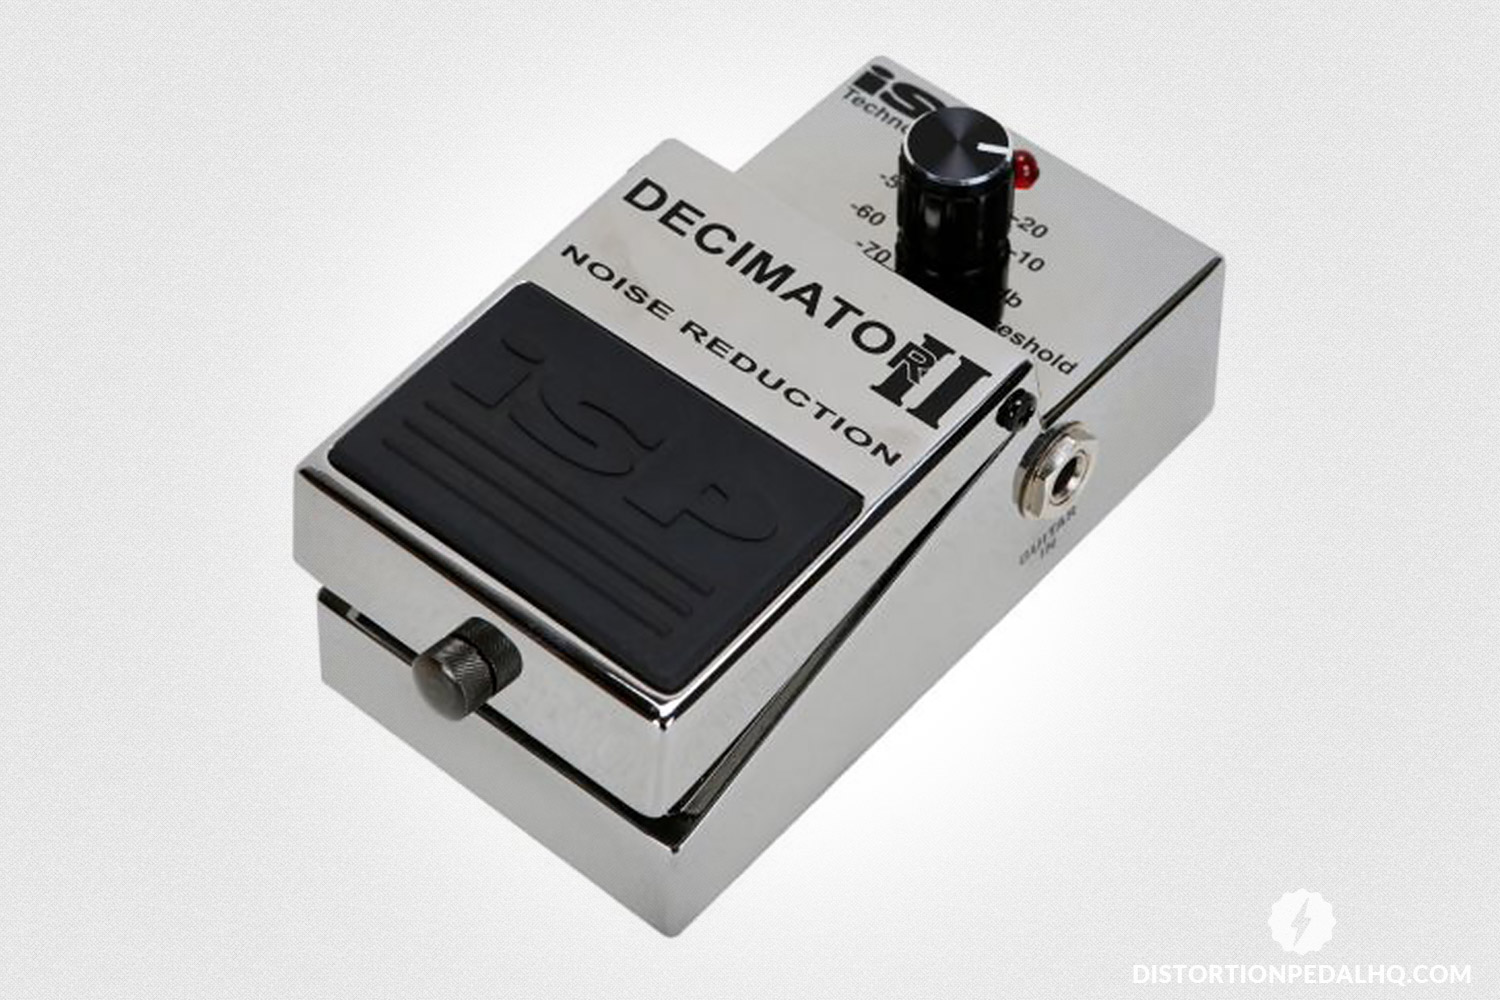 13 Best Guitar Noise Gate Pedals Distortion Pedal Hq